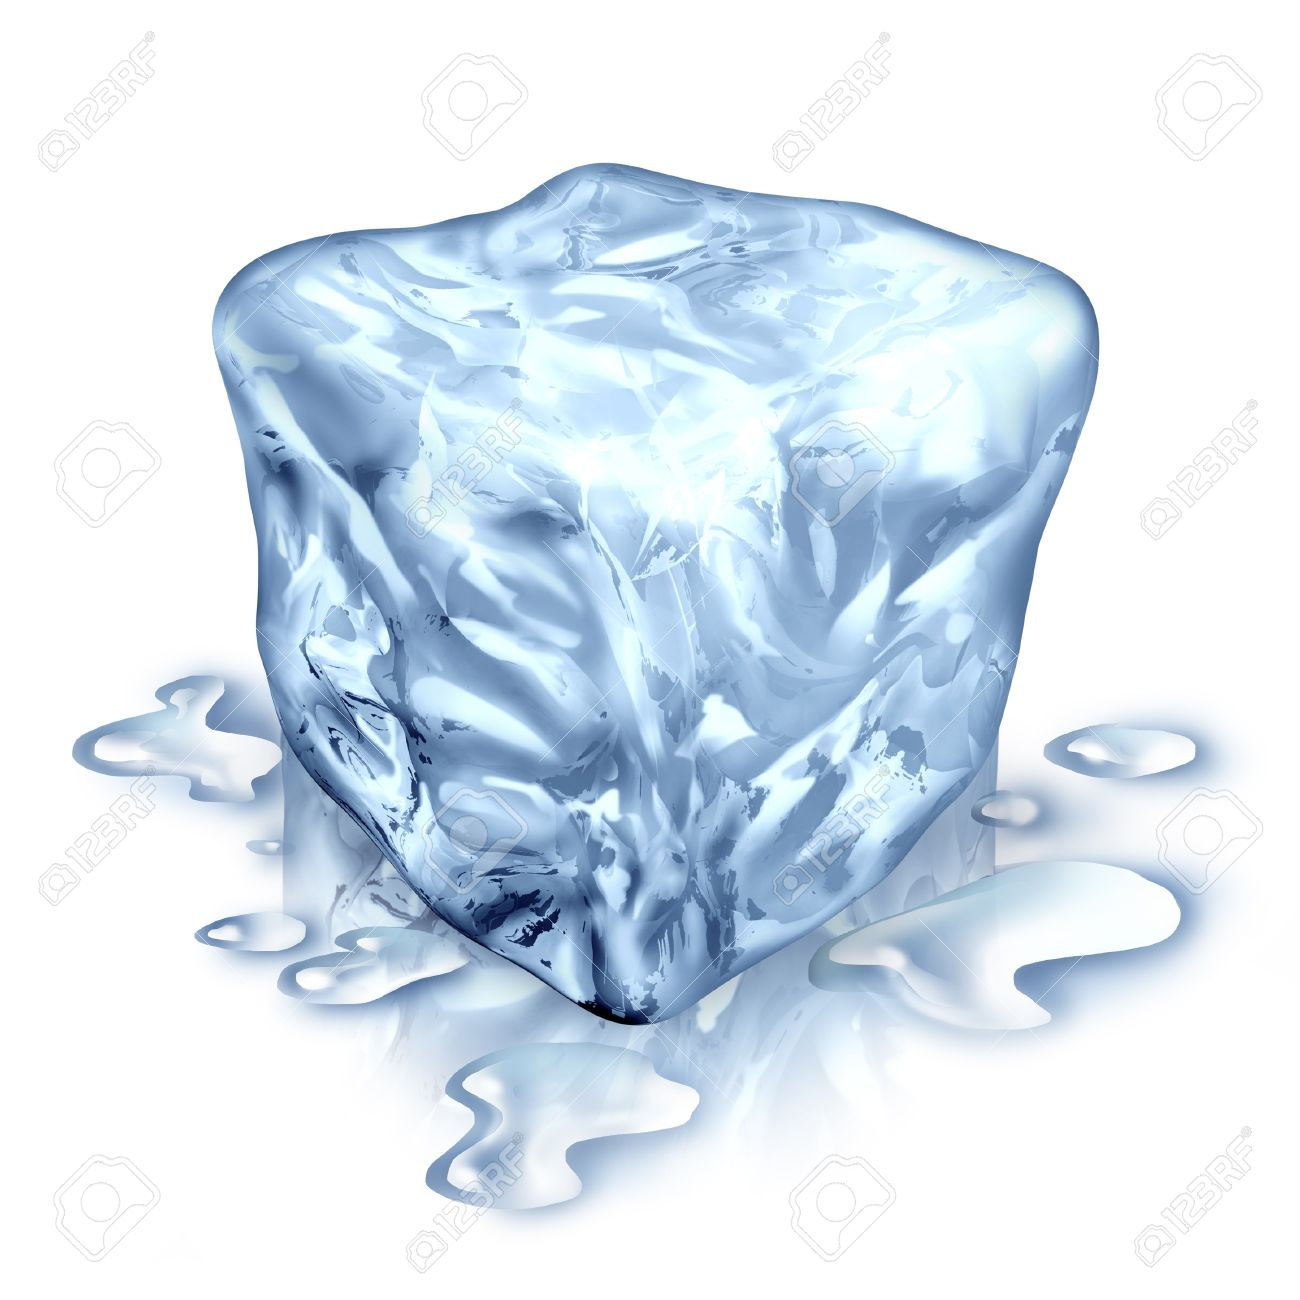 Ice Cube With Melting Water Drops On A White Background As Symbol Of Cool Refreshing